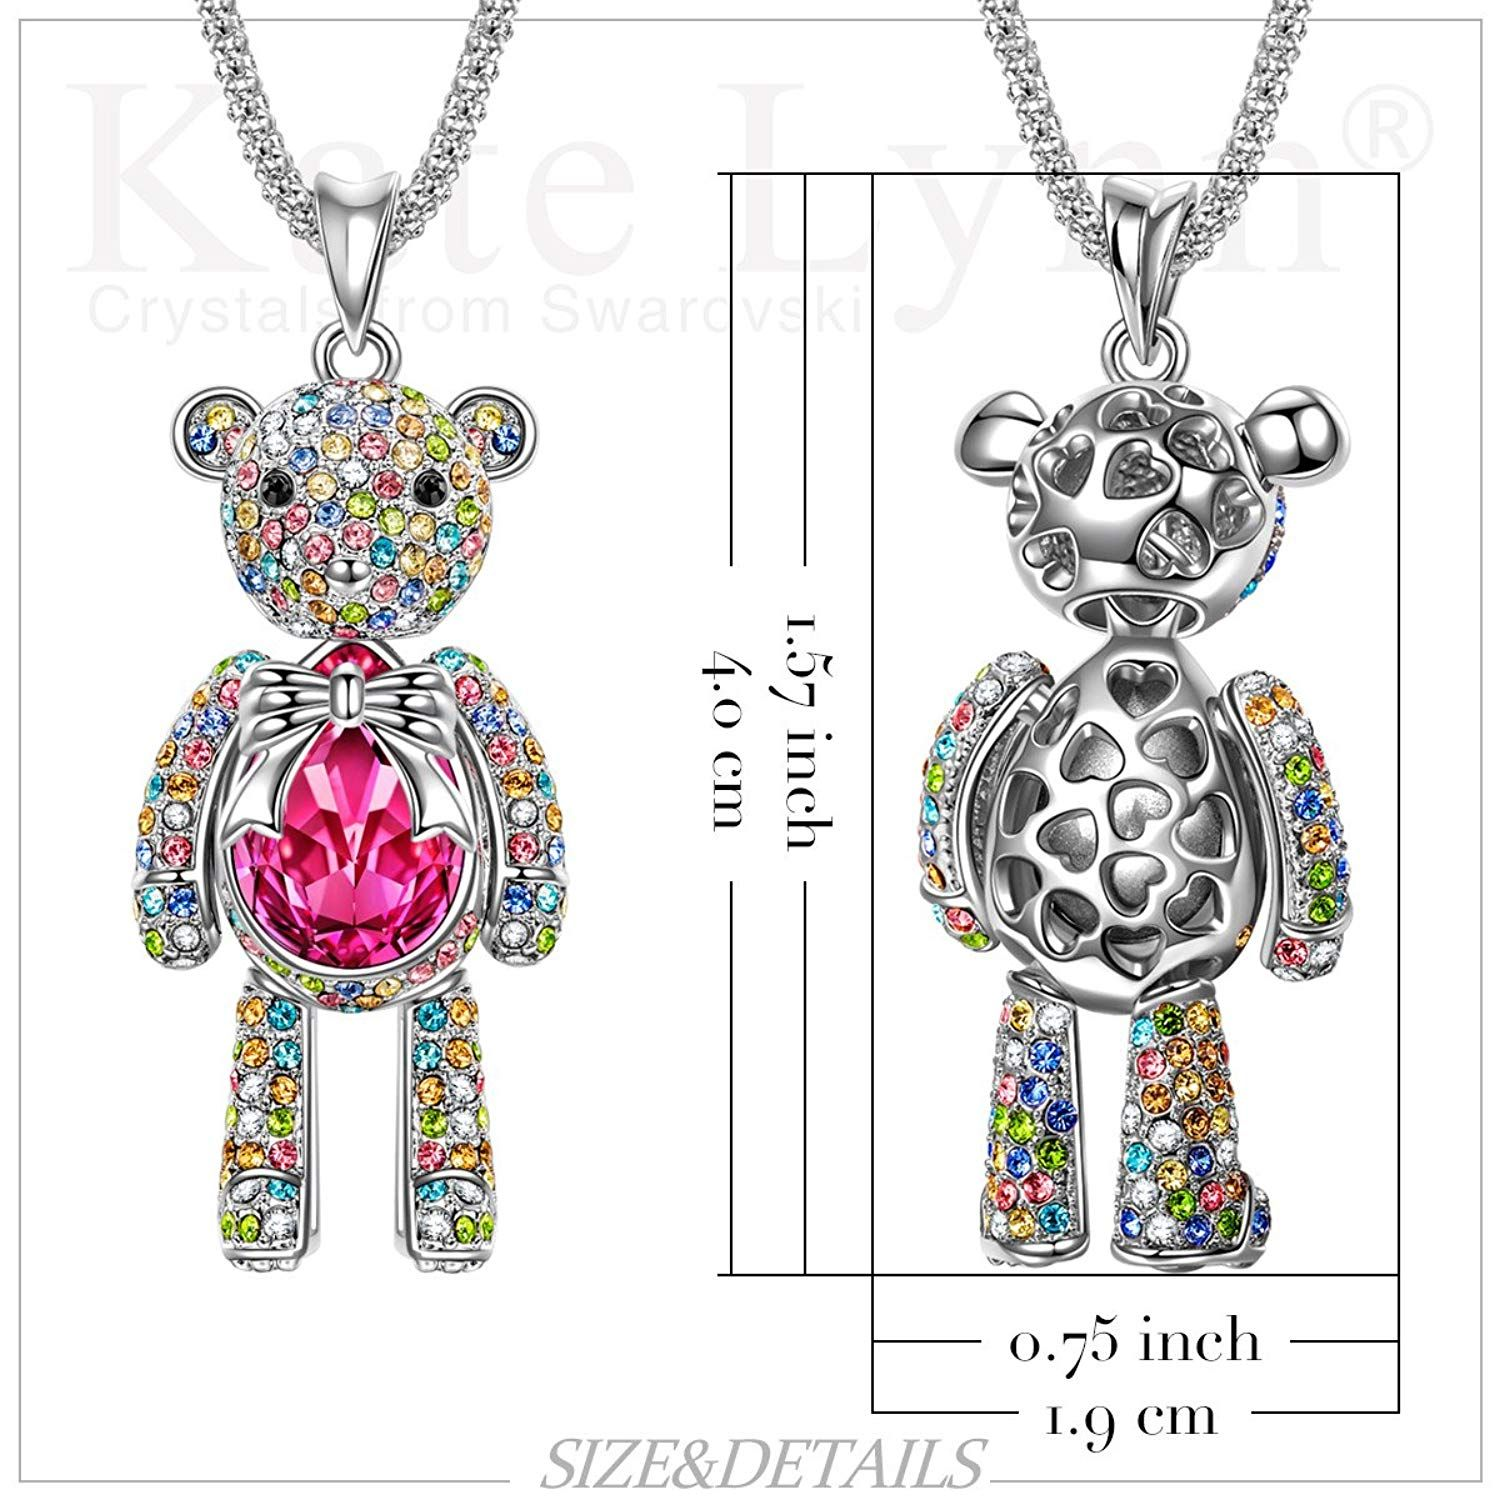 8e5b446389 Christmas Gifts for Girls with SWAROVSKI Crystals KATE LYNN 'Sweetheart'  Teddy Bear Rose Pink